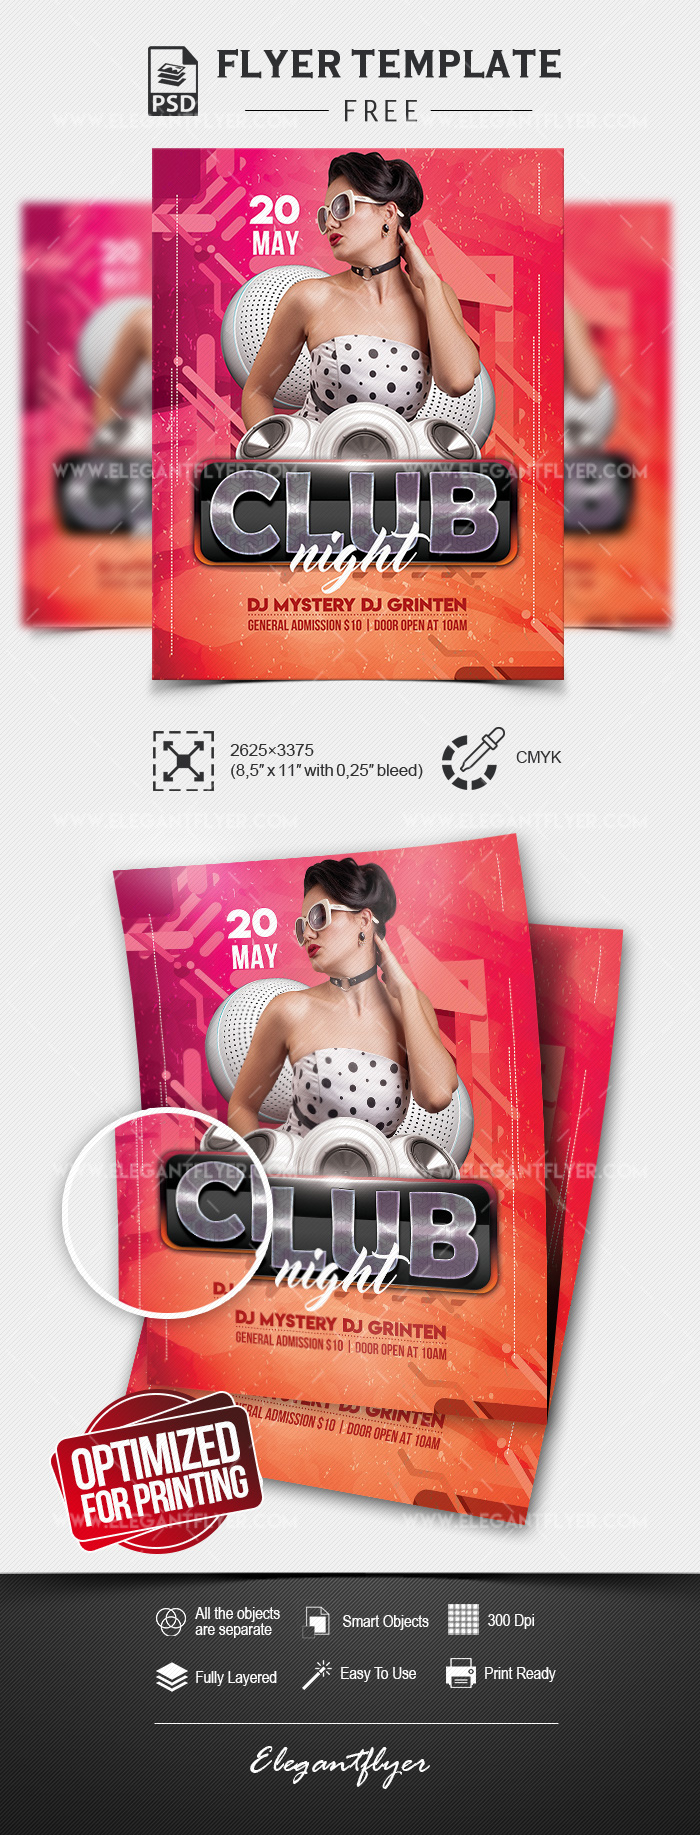 Club Night – Free Flyer Template in PSD